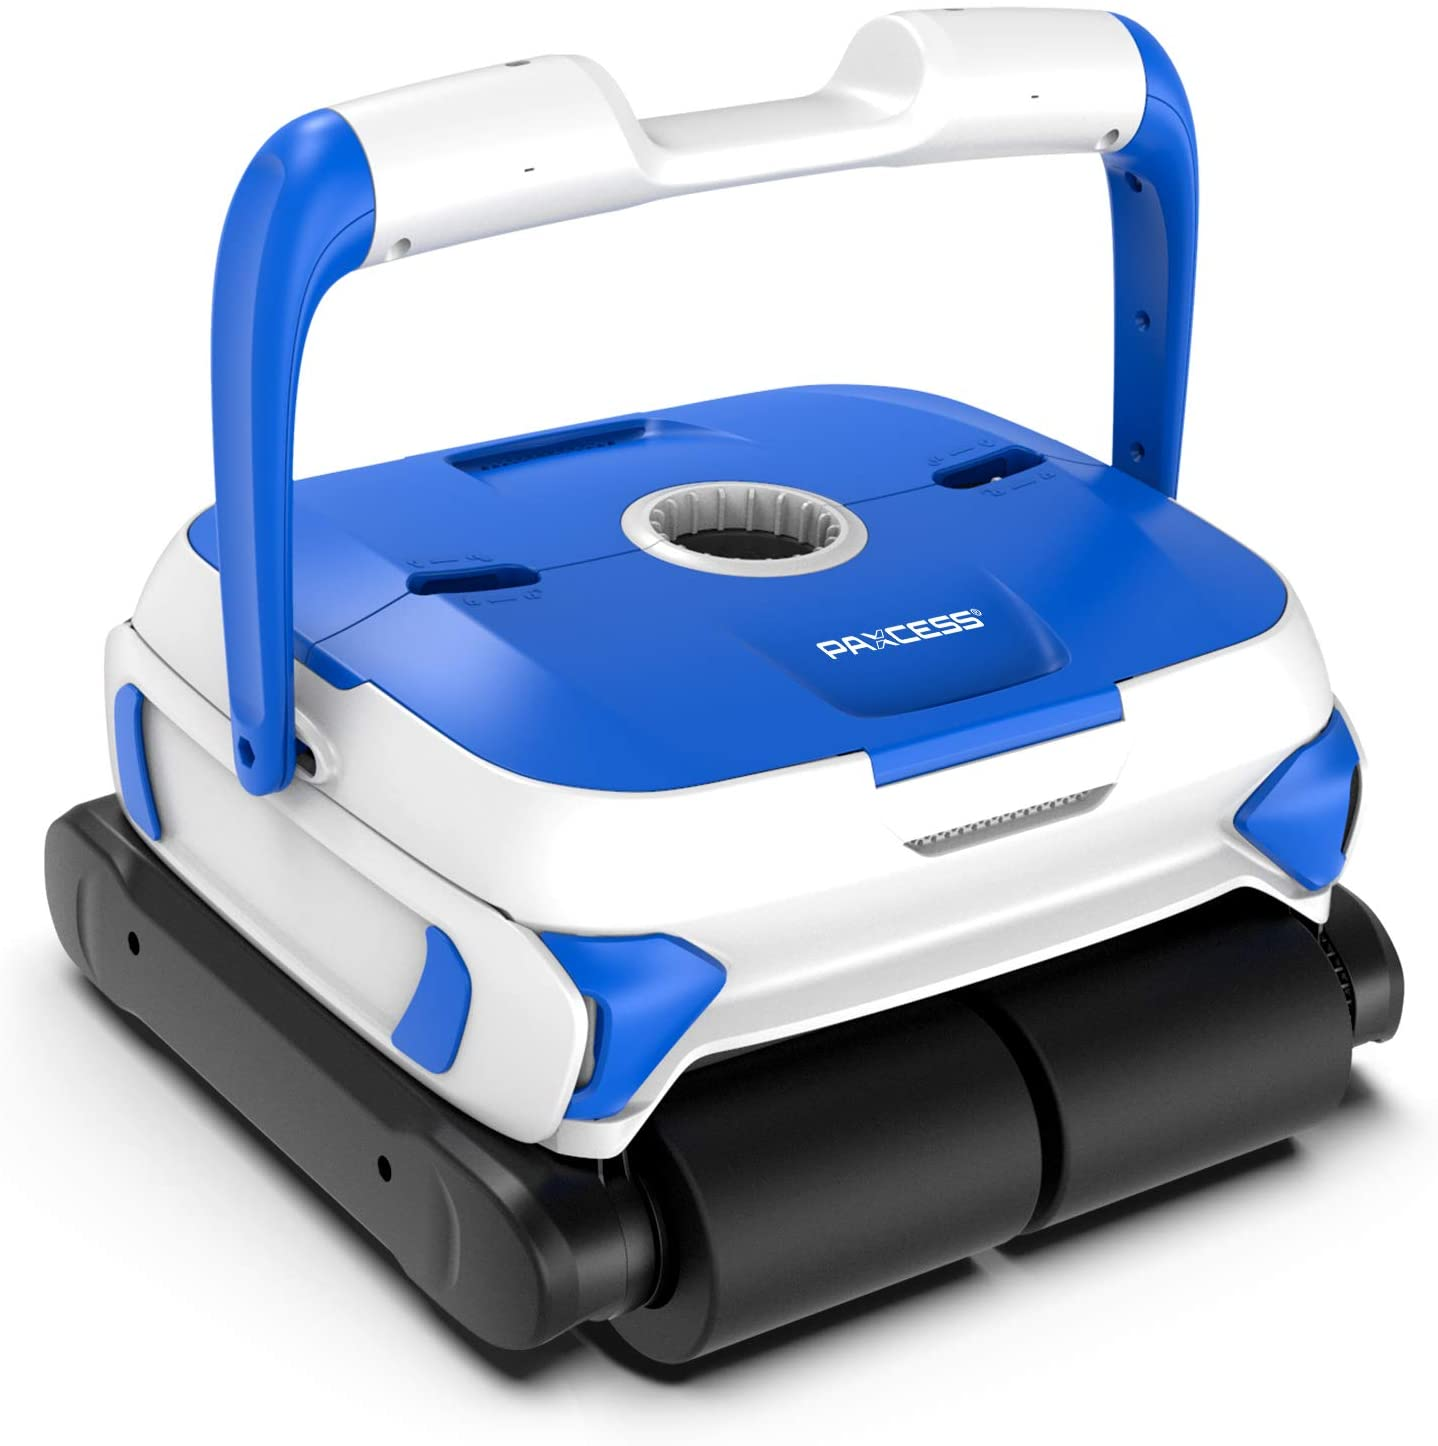 PAXCESS Wall-Climbing Automatic Pool Cleaner